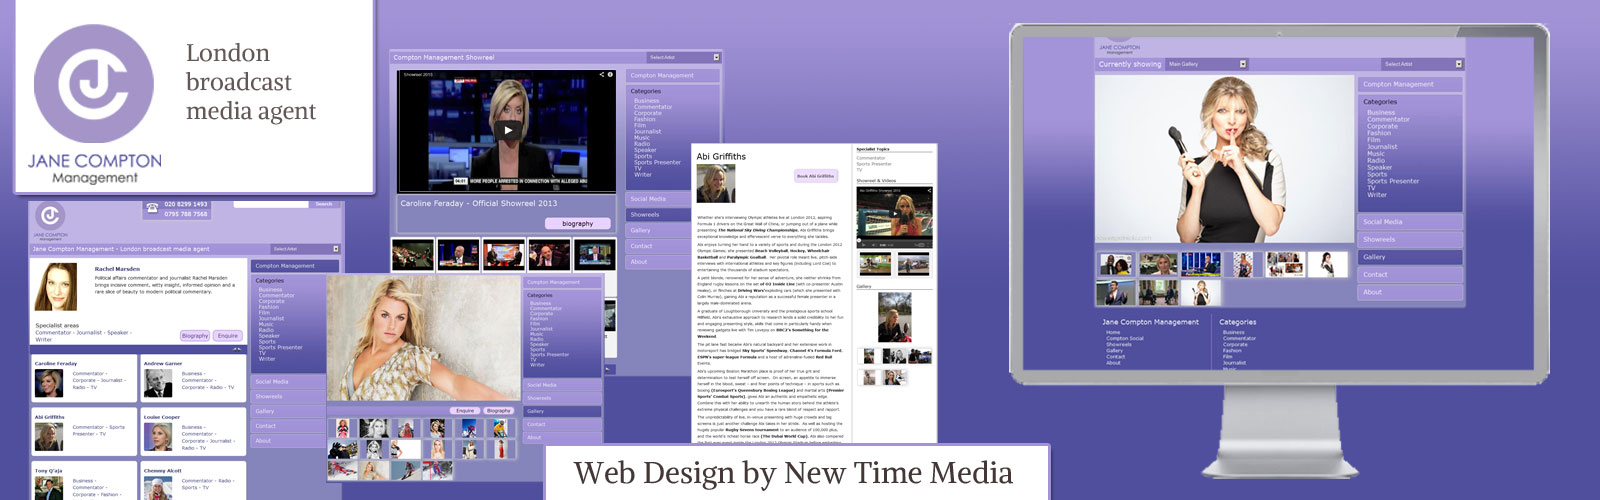 Website Design of Compton Management by New Time Media